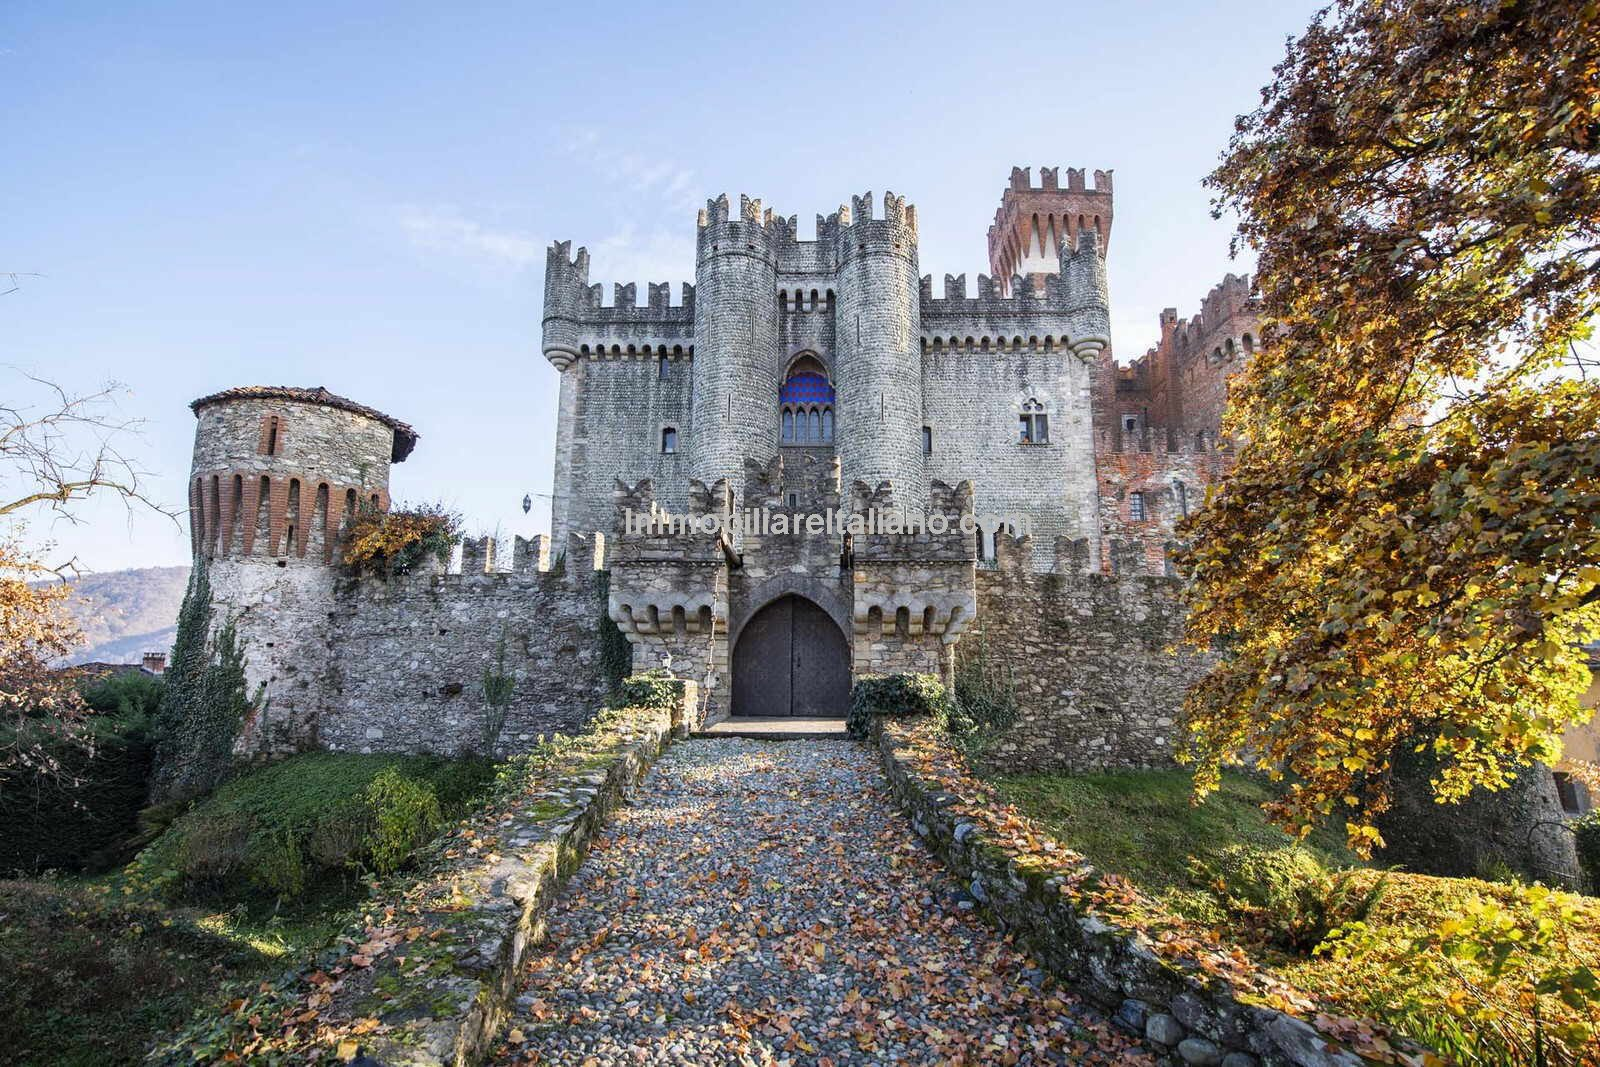 View of drawbridge entrance to Castle of Italy for sale